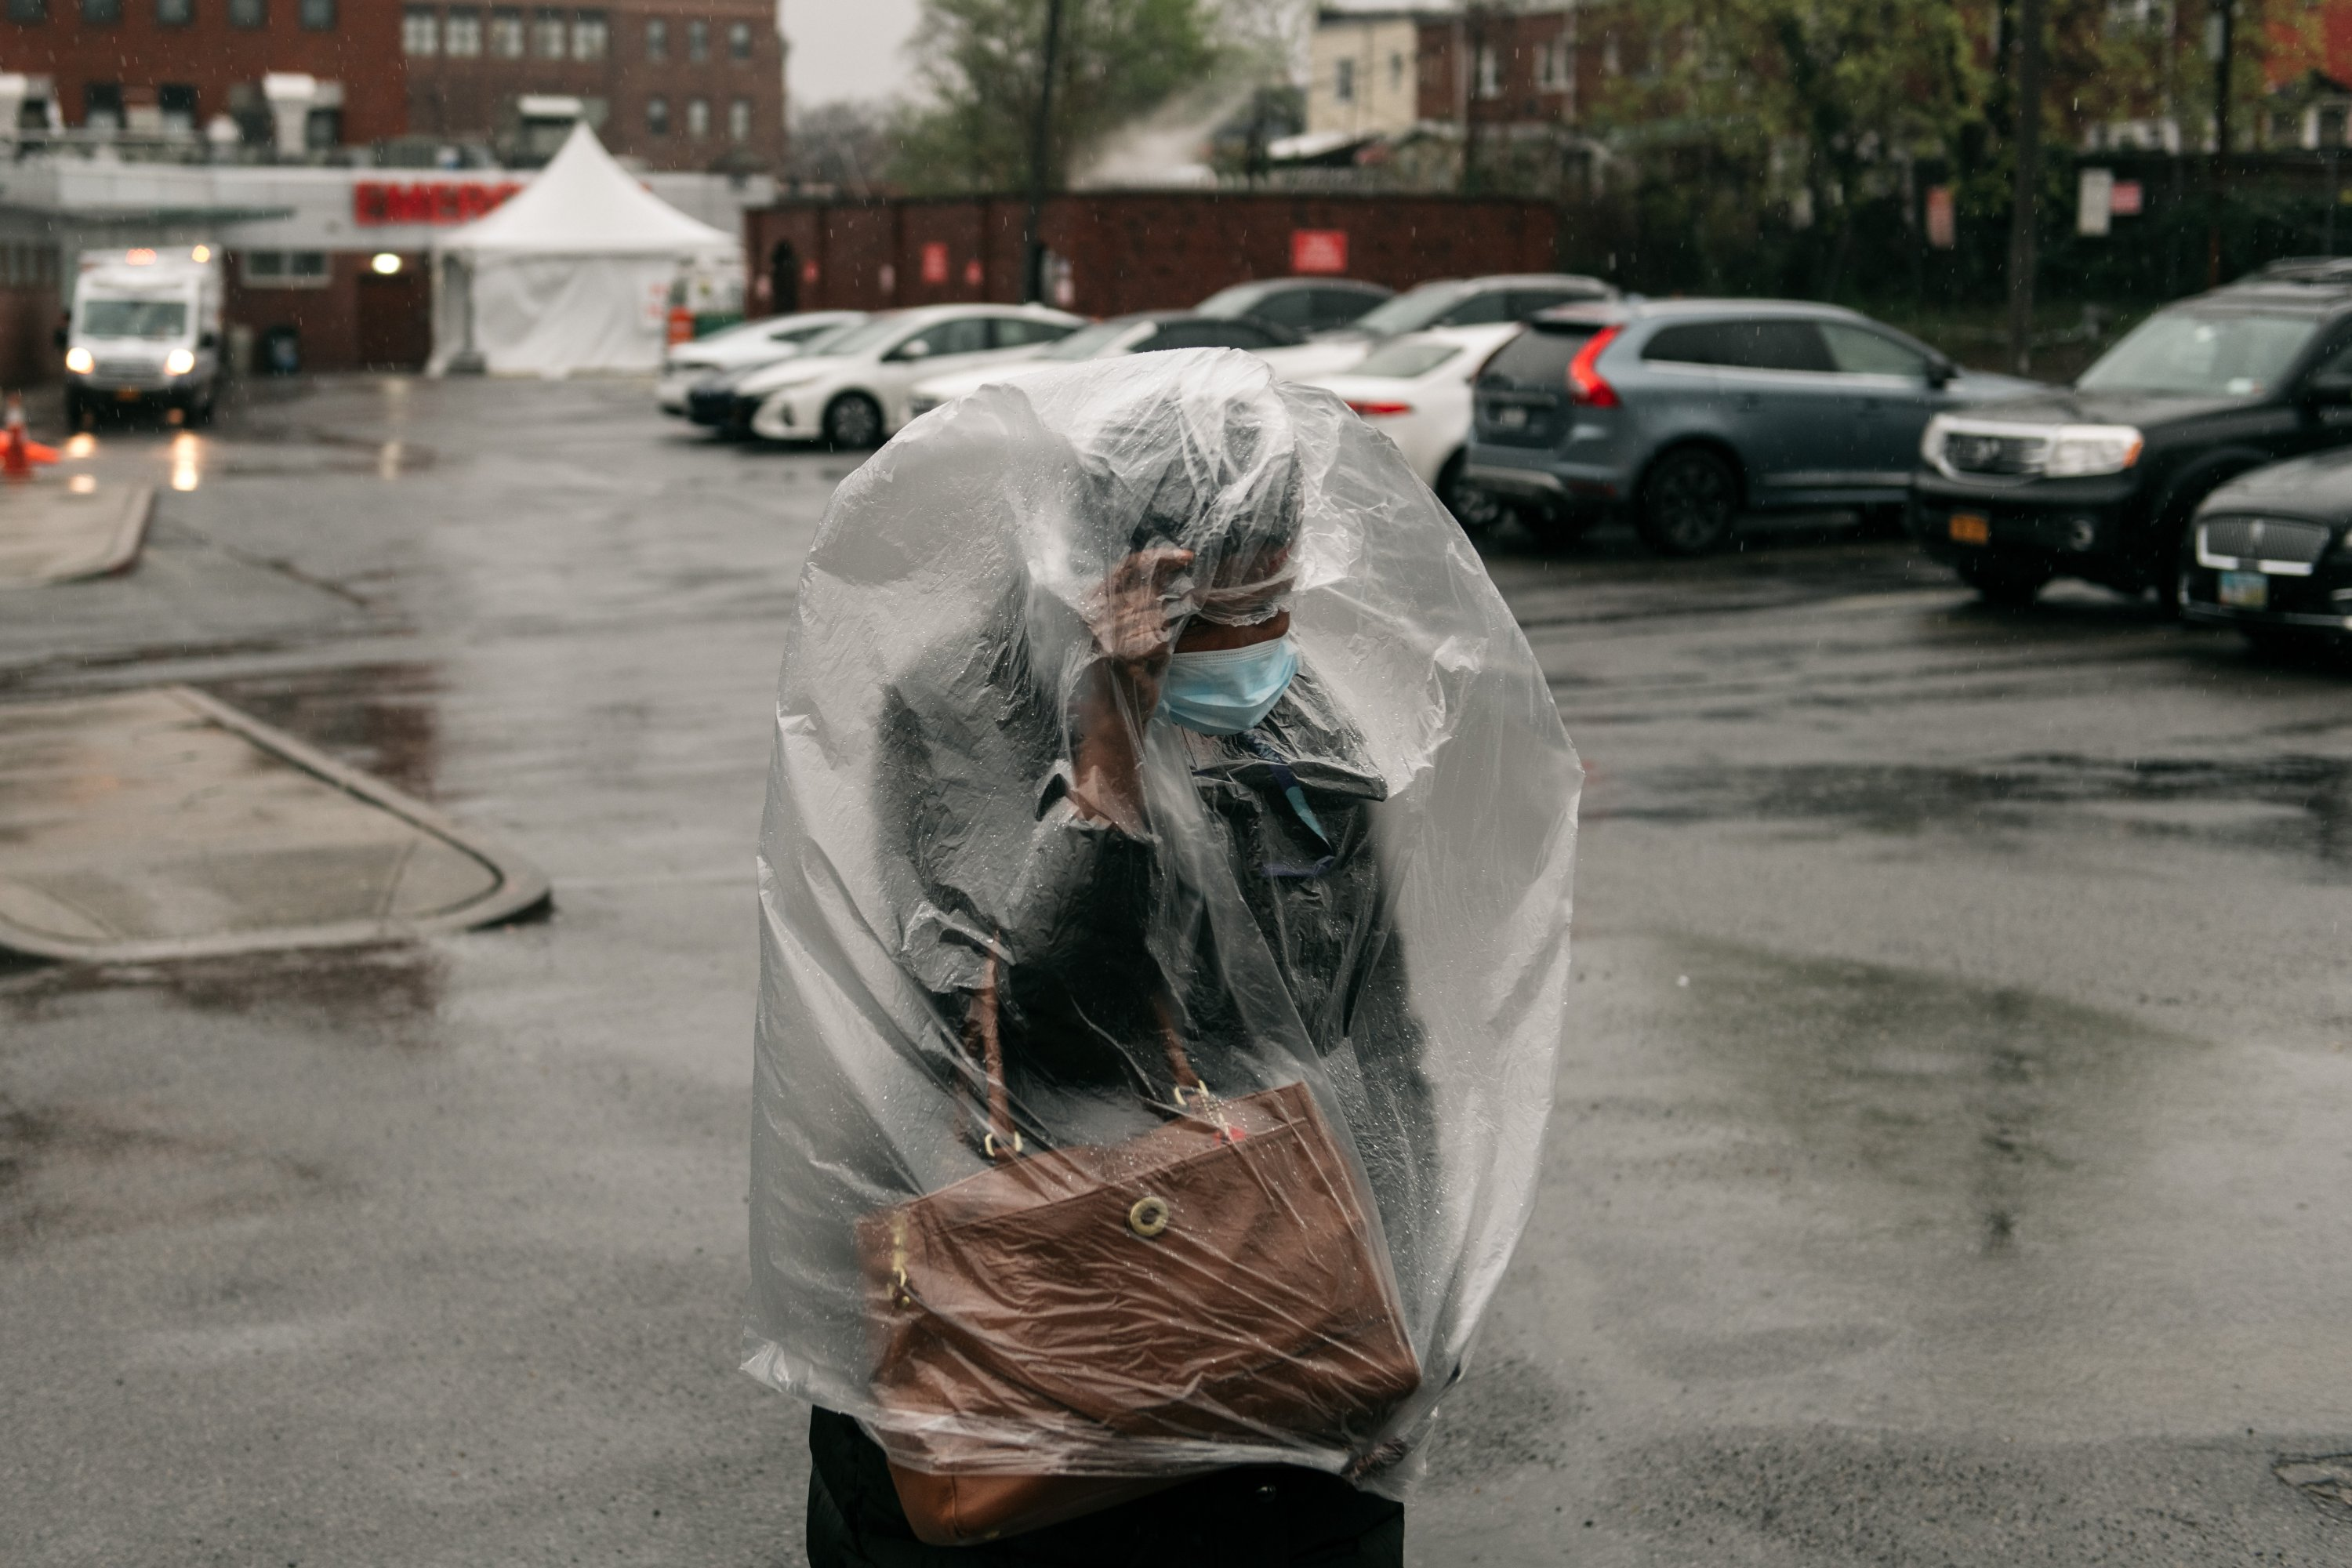 A woman wearing a mask against the coronavirus covers herself with plastic as heavy rain falls in Brooklyn, New York City, U.S., April 13, 2020. (Photo by Getty Images)